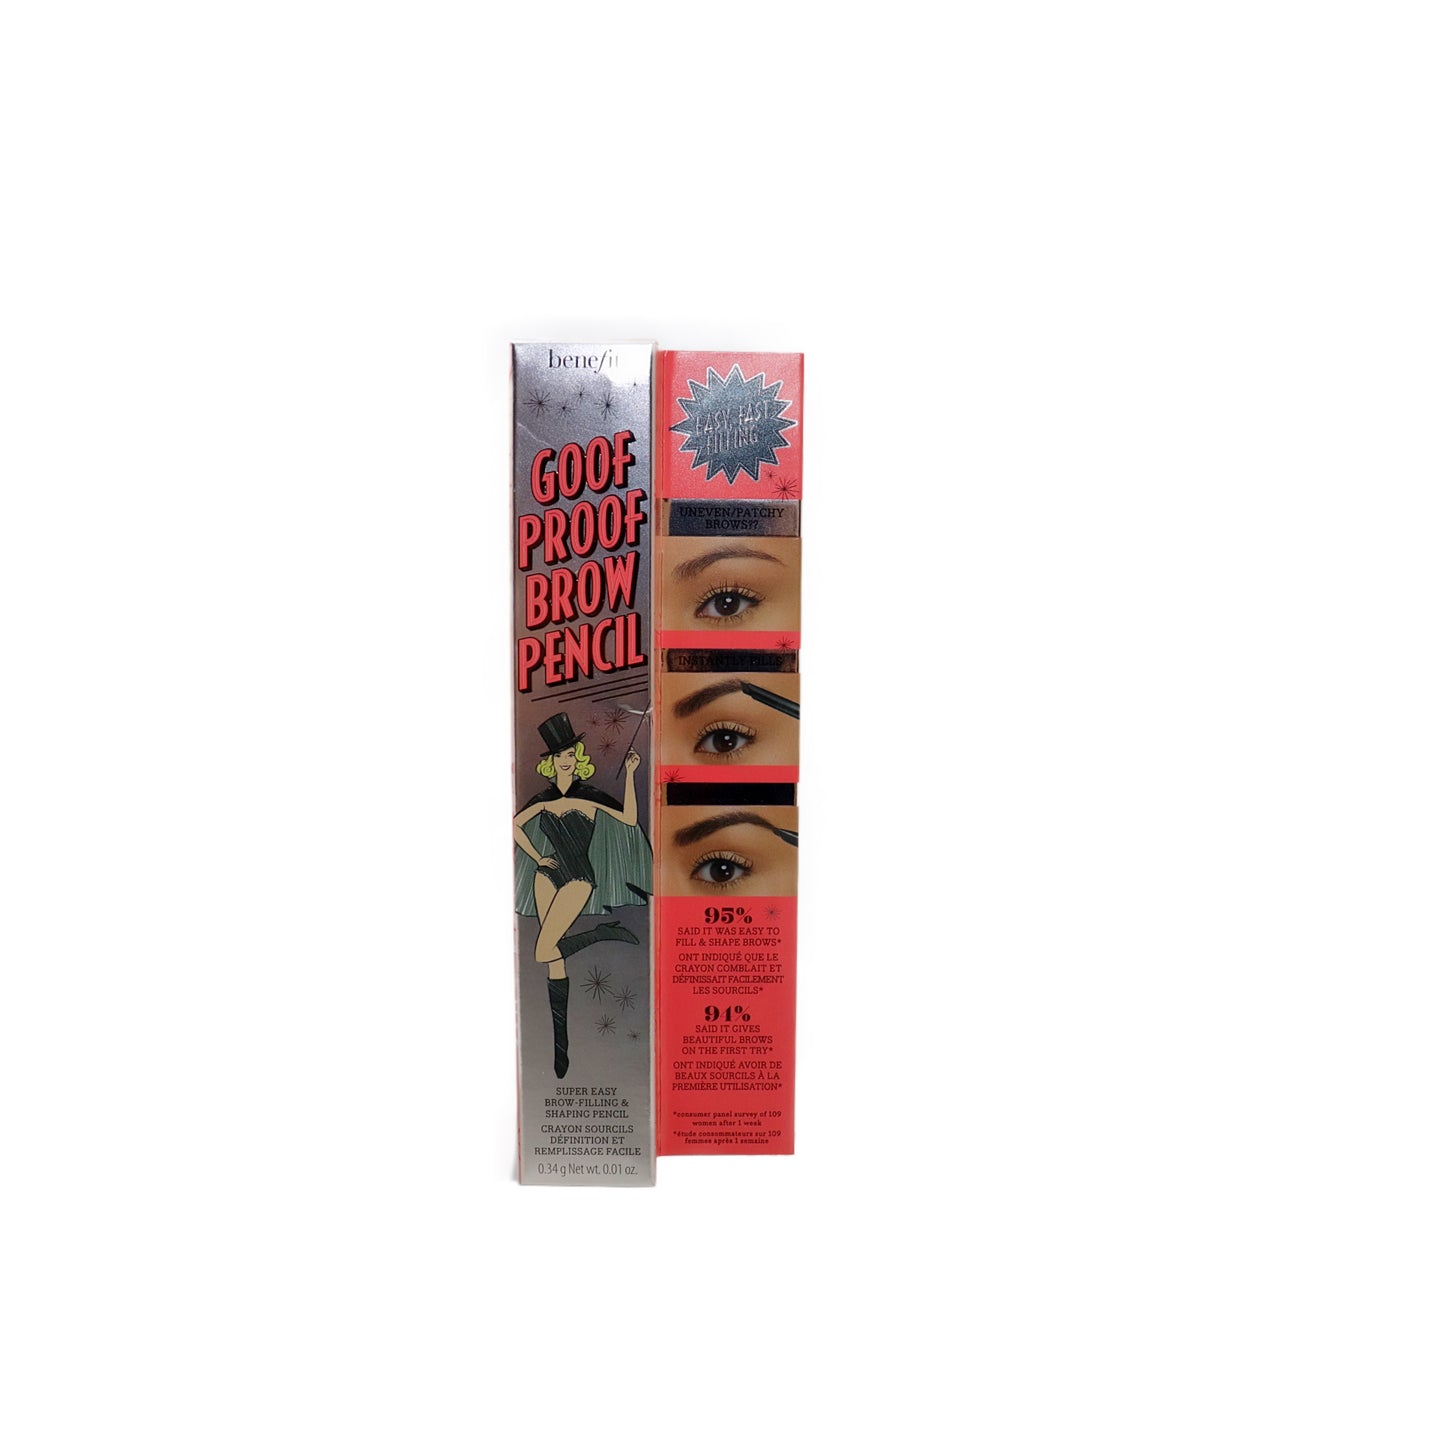 Benefit Goof Proof Brow Pencil #5 (Deep Brown to Black - Warm) 0.01 OZ, benefit brow pencil, brow perfect eye pencil, best perfect eye pencil, easy to do eyeshadow, easiest eyeshadow